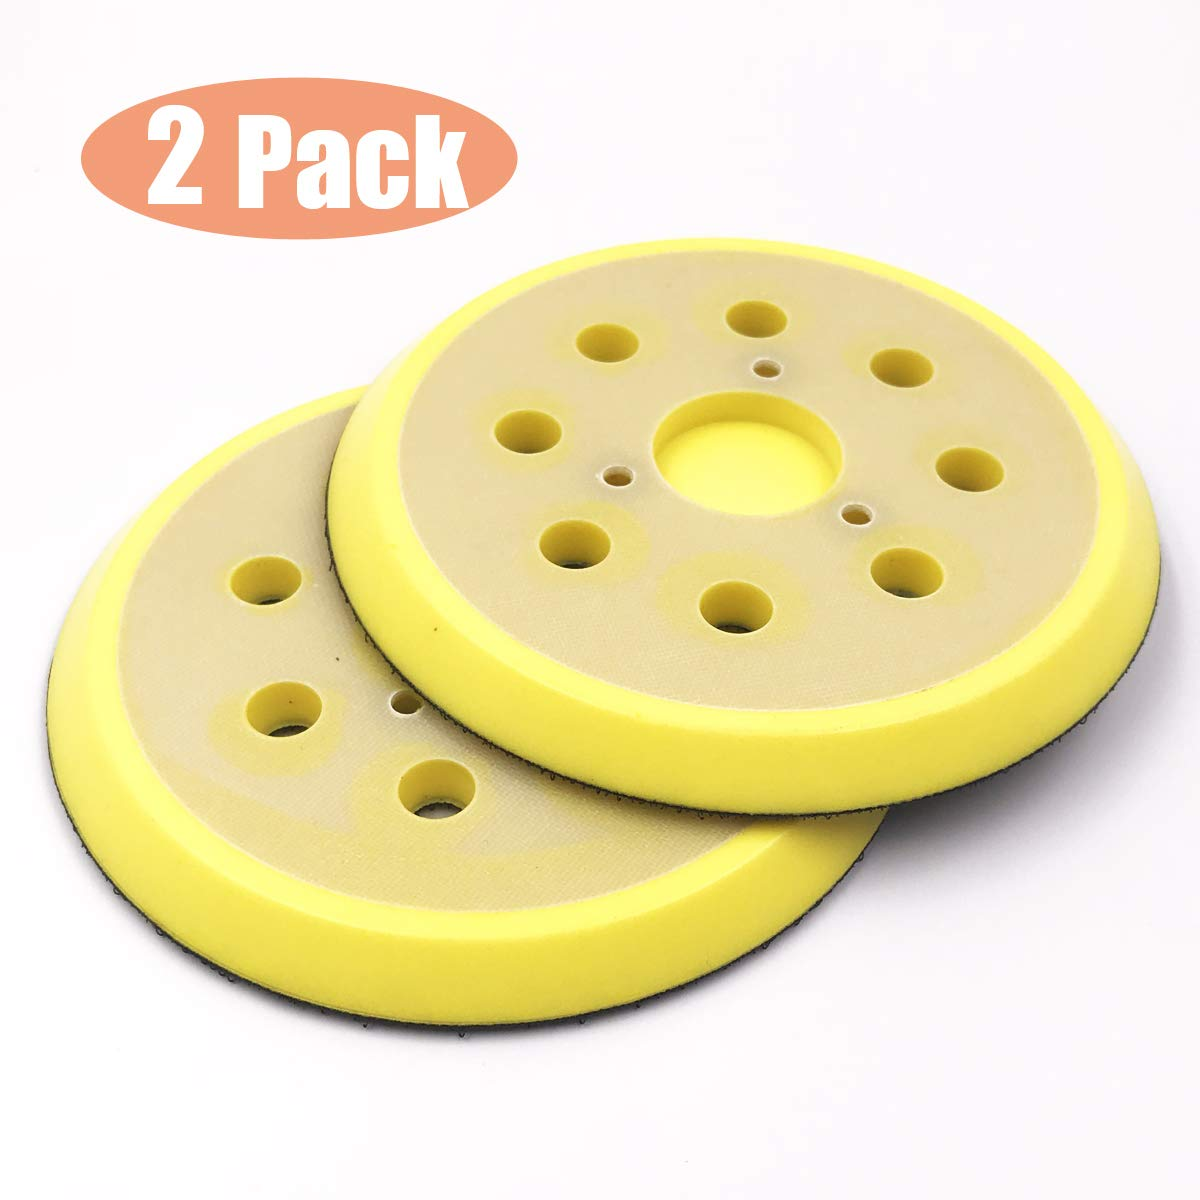 Huayao 2pcs 5'' Dia (125mm) Sander Backing Pad & Polisher, 8 Hole Sander Hook and Loop Pad Replaces Angle Grinder Scouring Pad for Sanding Finishing Polishing Buffing by HuaYao